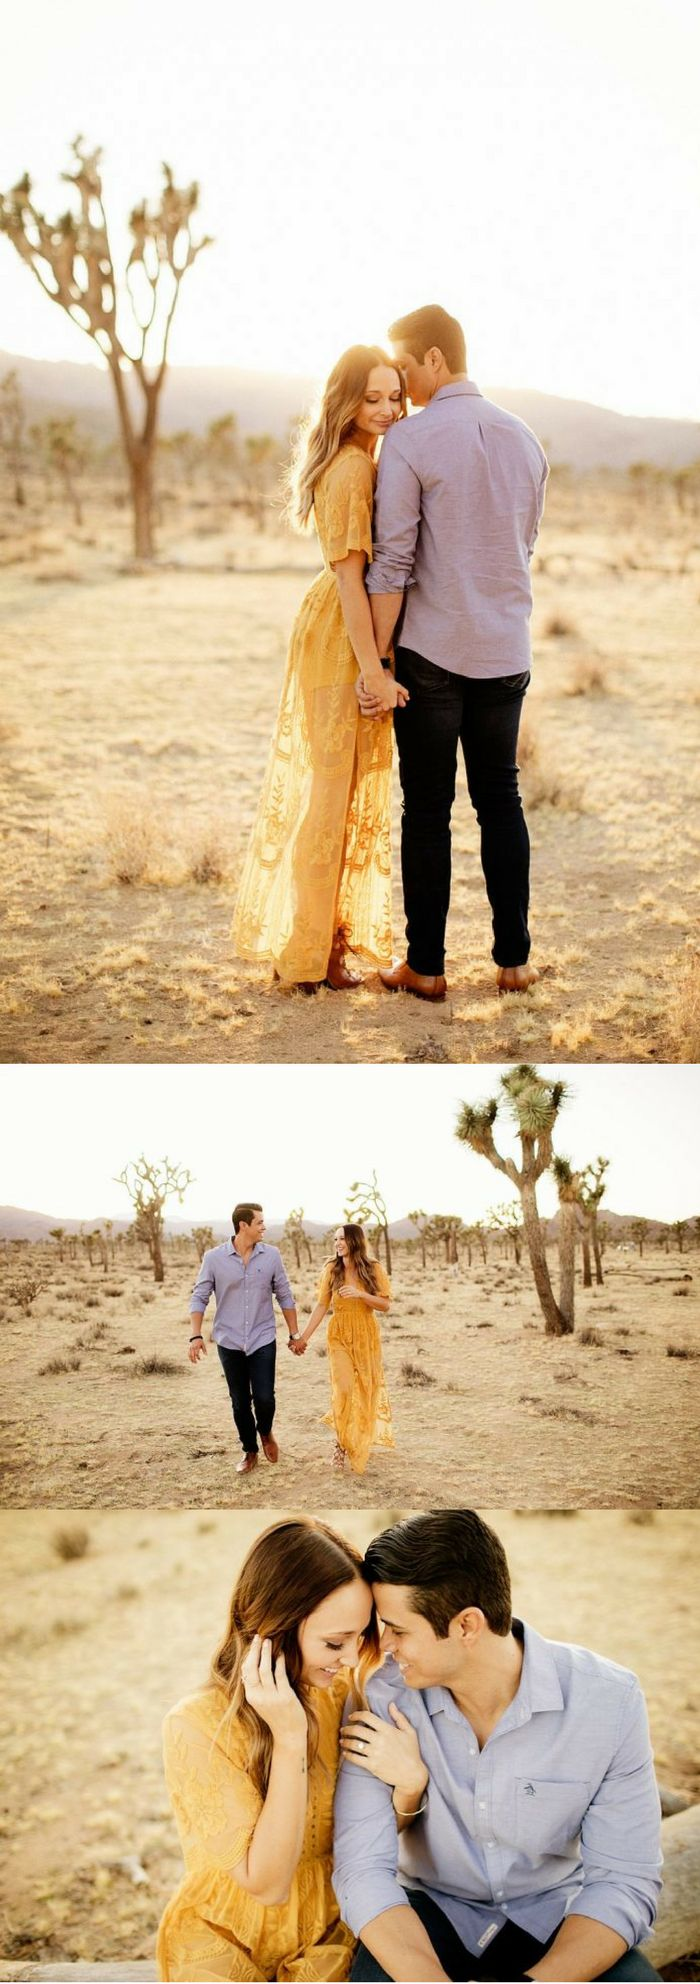 This desert engagement is breathtaking, and the couple has the cutest love story. <3